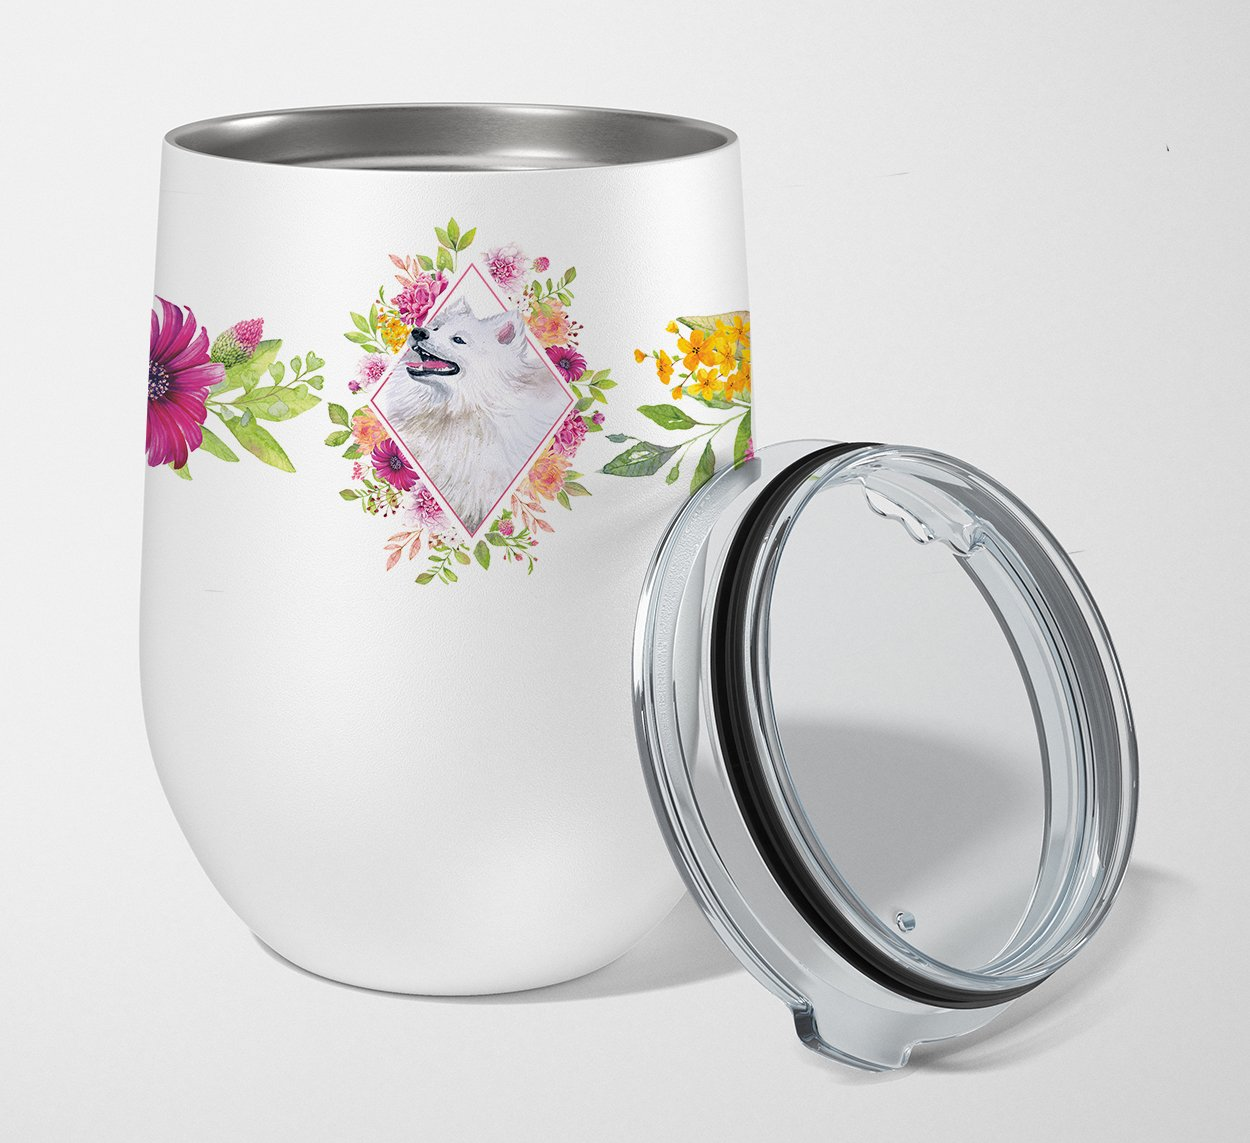 Samoyed Pink Flowers Stainless Steel 12 oz Stemless Wine Glass CK4177TBL12 by Caroline's Treasures